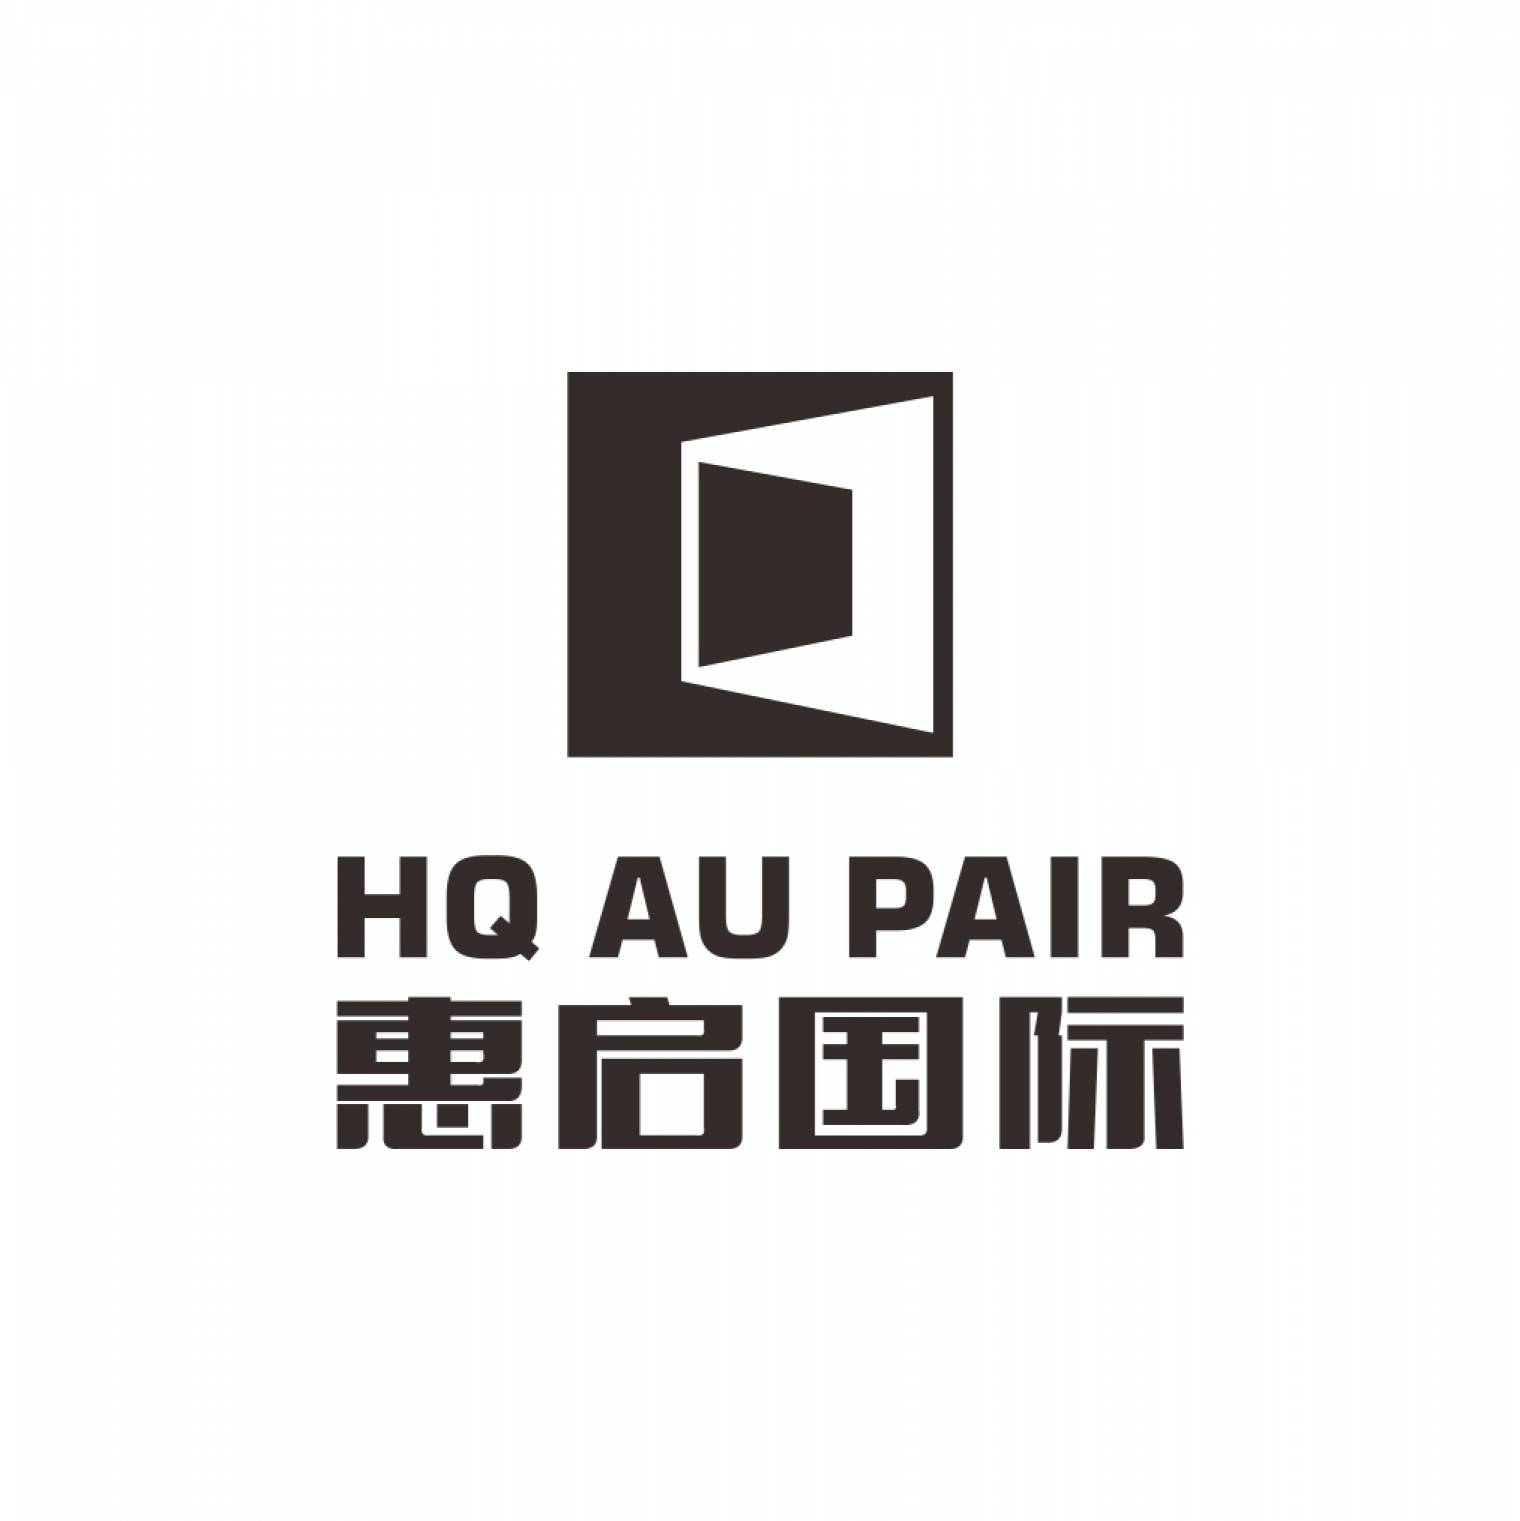 IAPA welcomes new Affiliate Member Shenzhen Huiqi Cultural Communication Co.,Ltd.